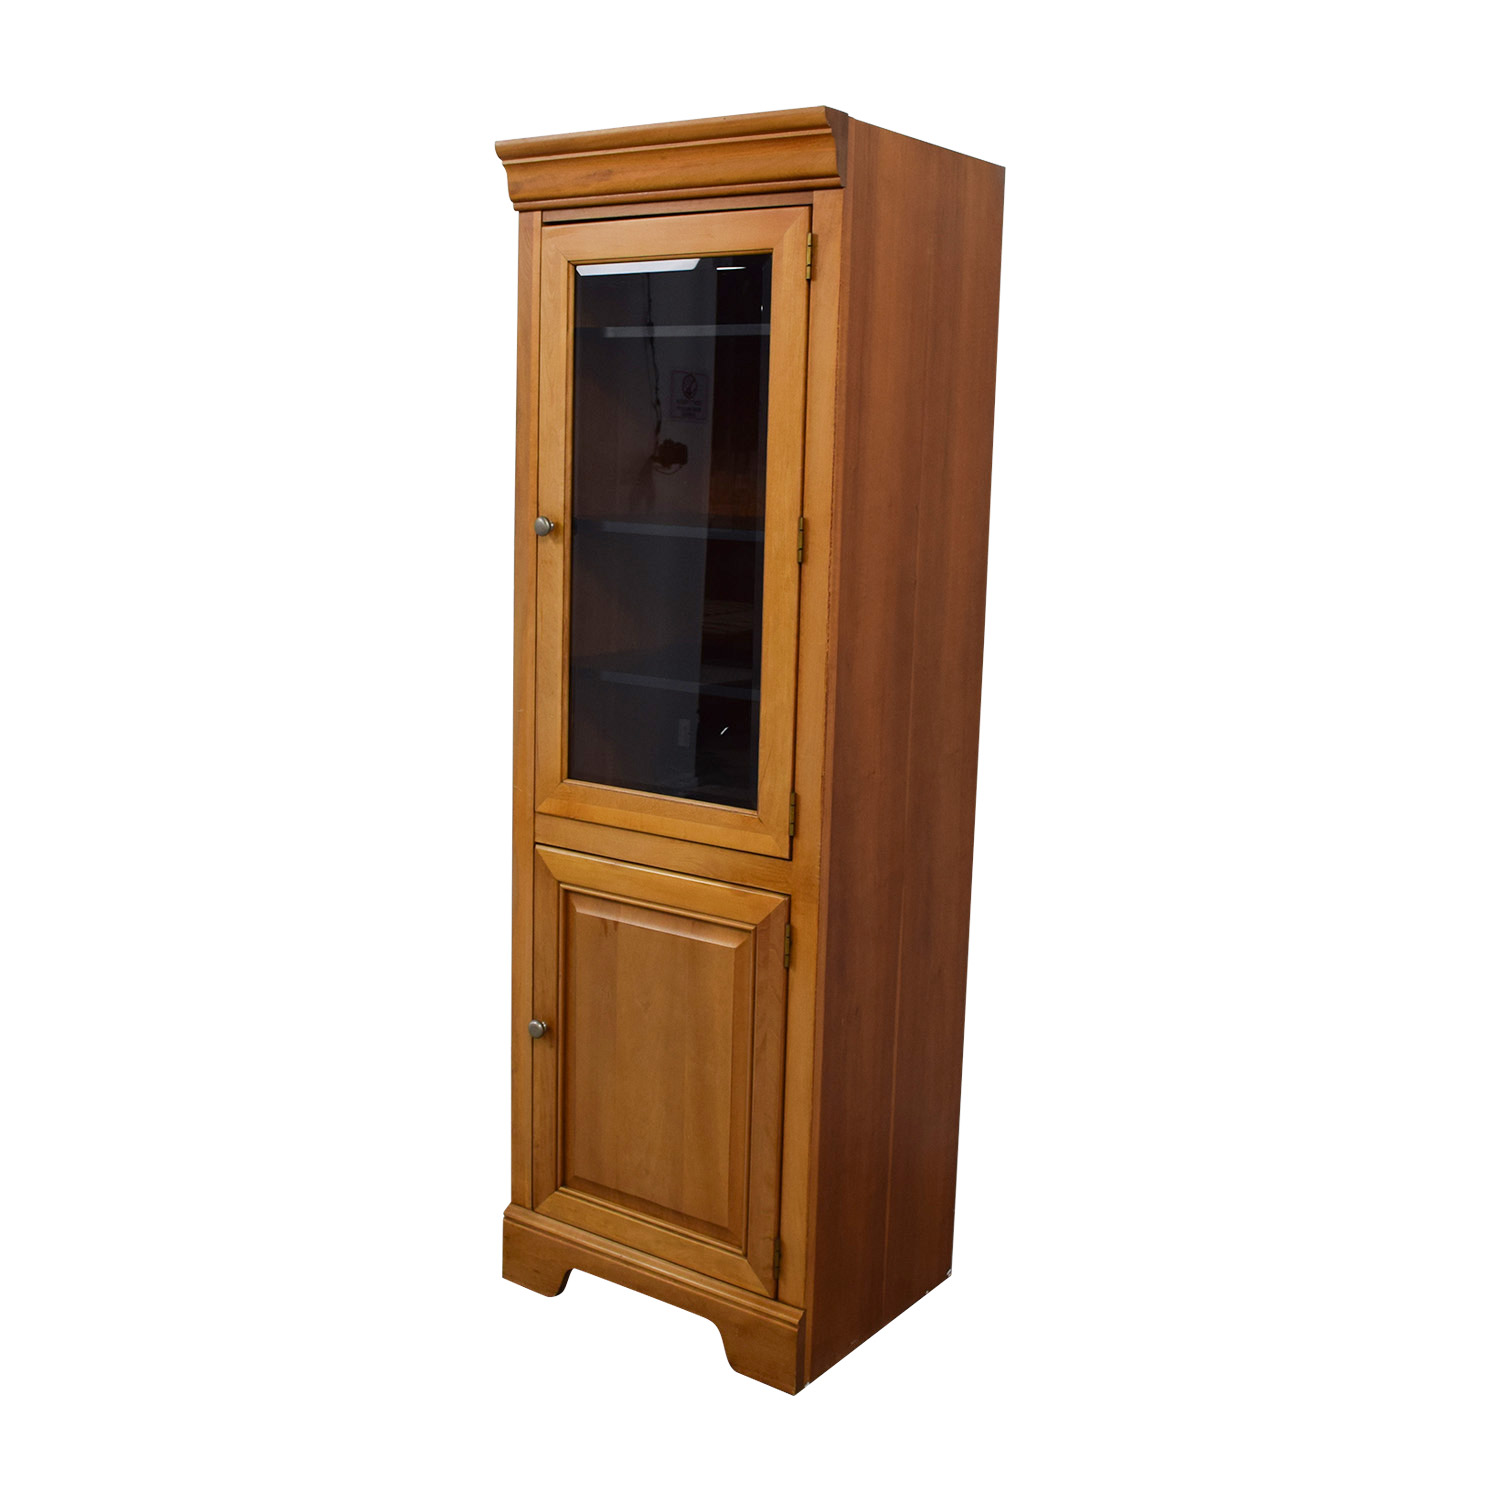 Stanley Furniture Company Stanley Furniture Company Tall Wood and Glass Cabinet Storage